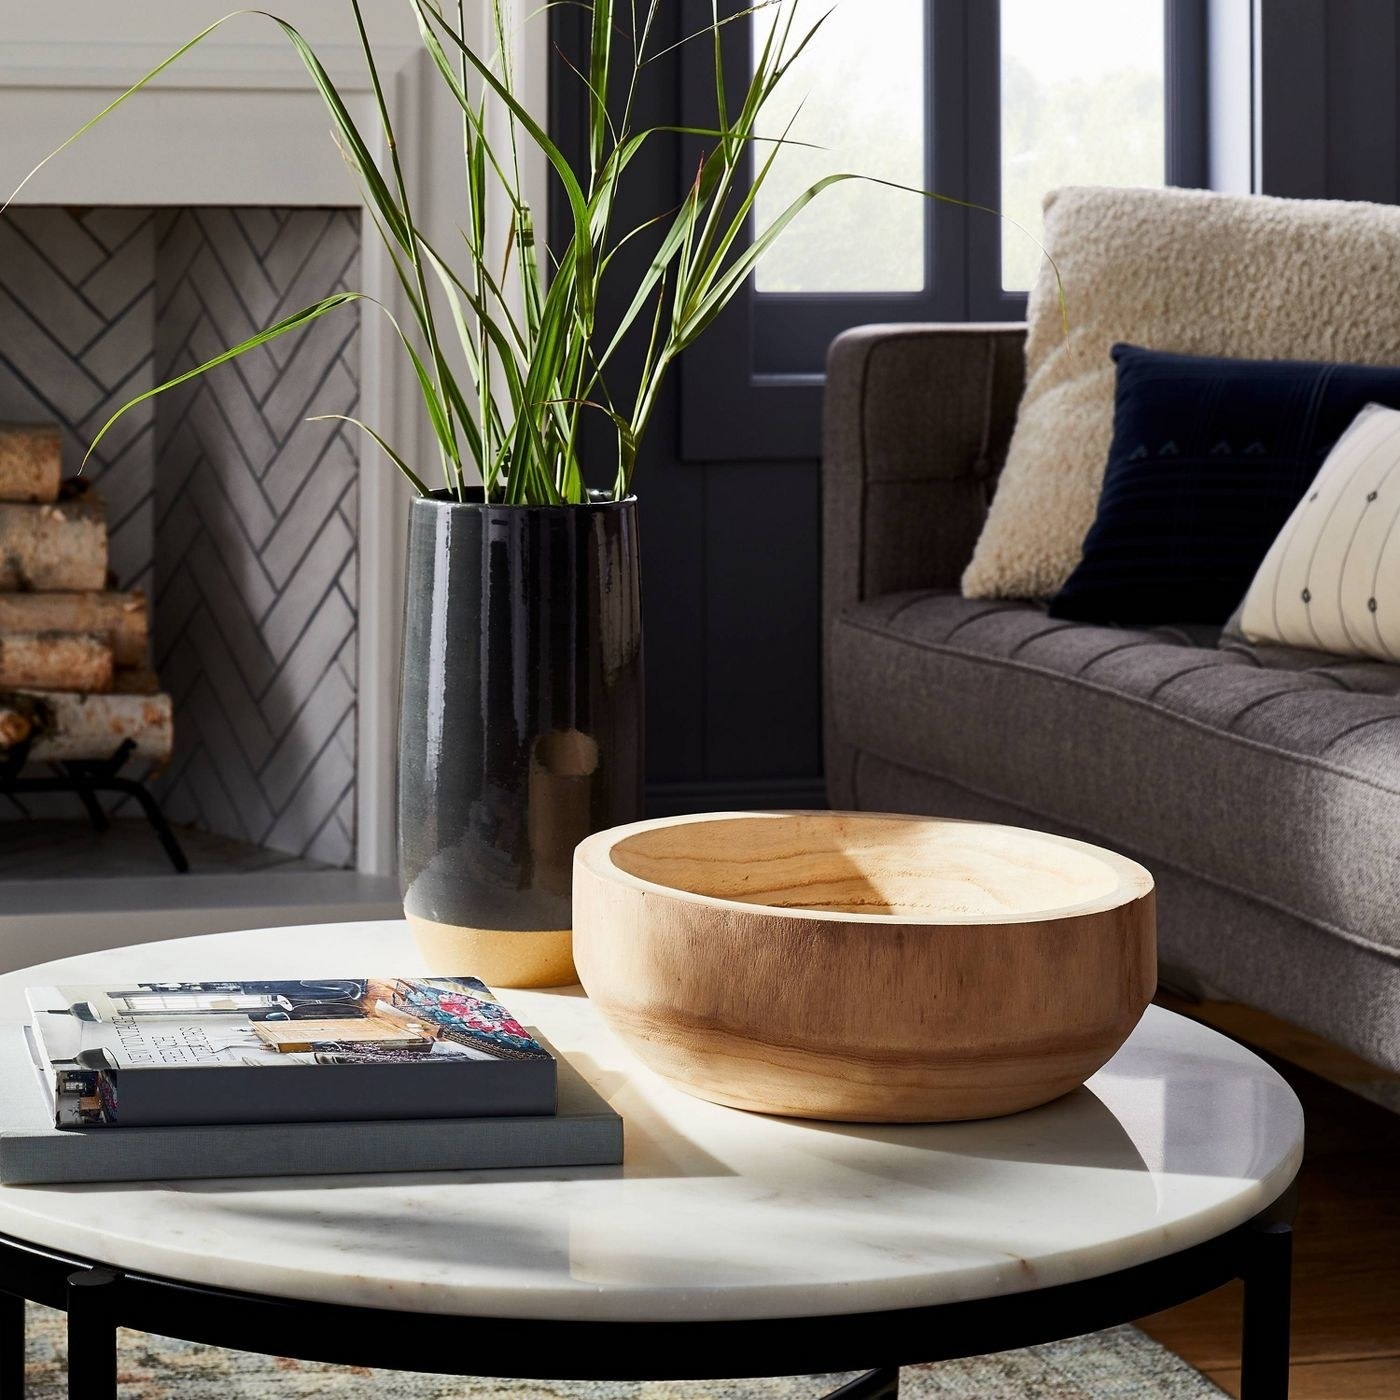 decorative wood bowl on a marble coffee table